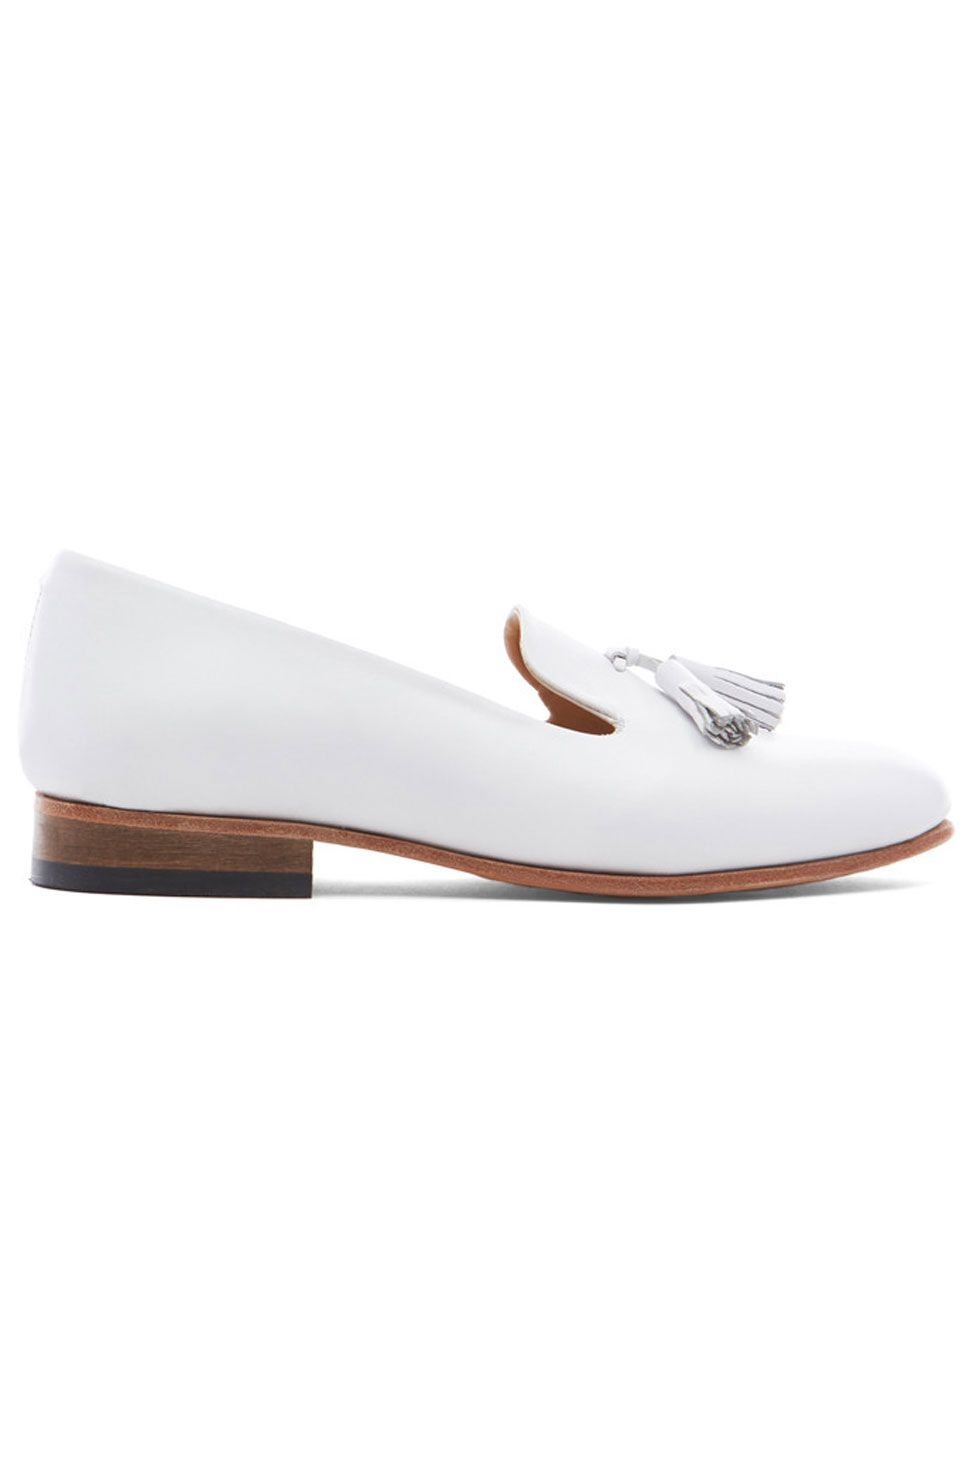 "<!--StartFragment-->Dieppa Restrepo Gaston Loafer, $300; &lt;a href="" http://www.shopalthouse.com/products/gaston-slip-on-loafer""&gt;shopalthouse.com&lt;/a&gt;<!--EndFragment-->"